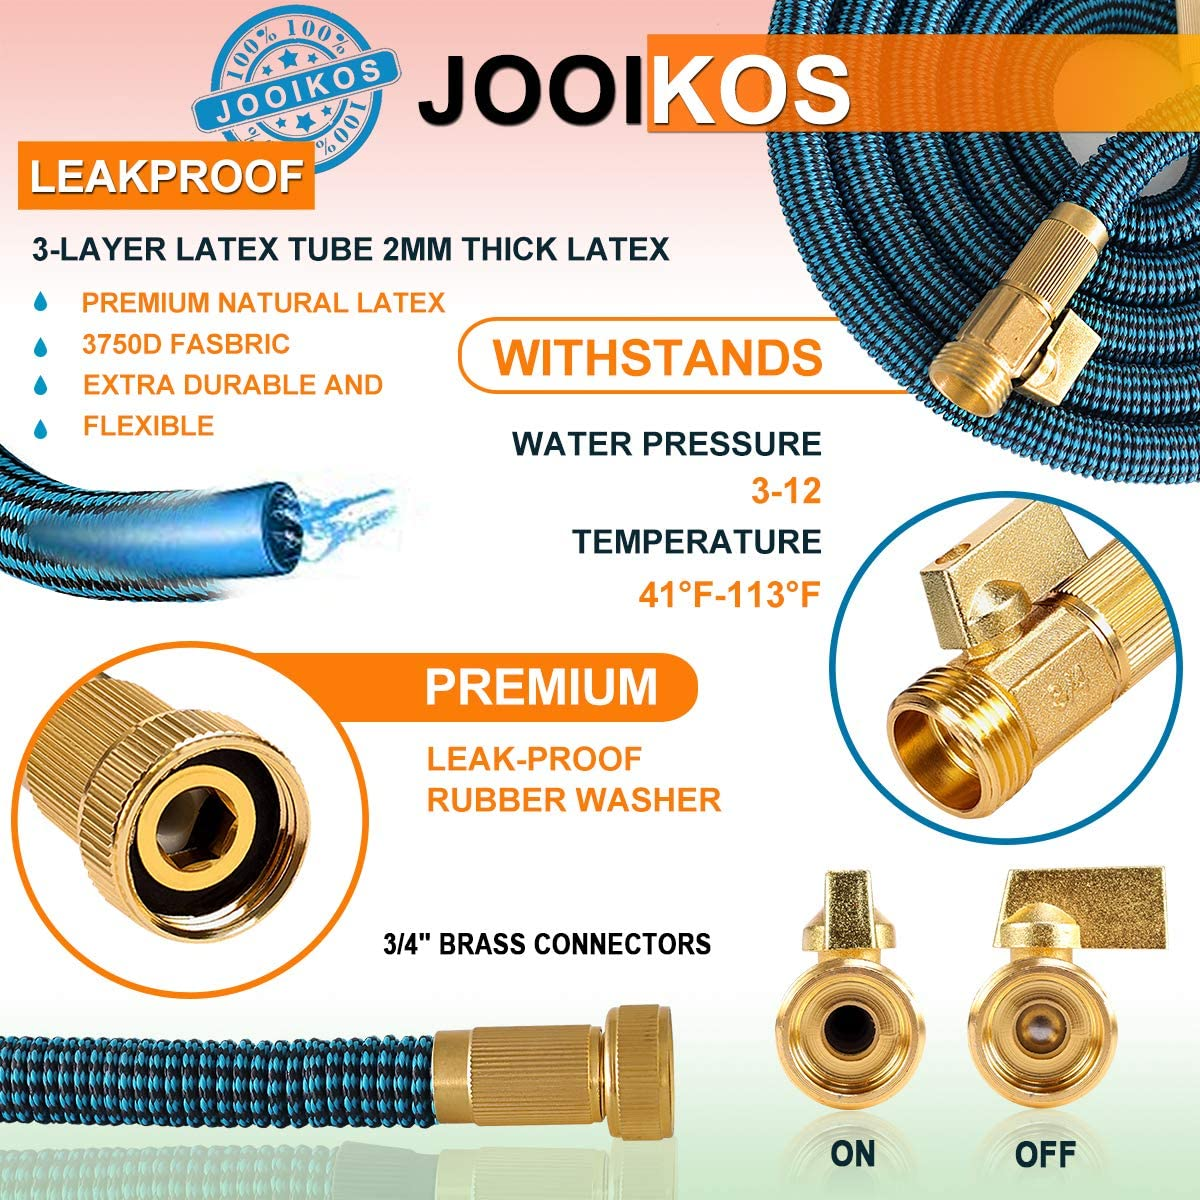 """JOOIKOS Expandable Garden Hose 50ft - Flexible Water Hose with 10 Functions Spray Nozzle and Durable Triple Latex Core with 3/4"""" Solid Brass Fittings/Strength Stretch 3750D Fabric for Watering/Washing : Garden & Outdoor"""